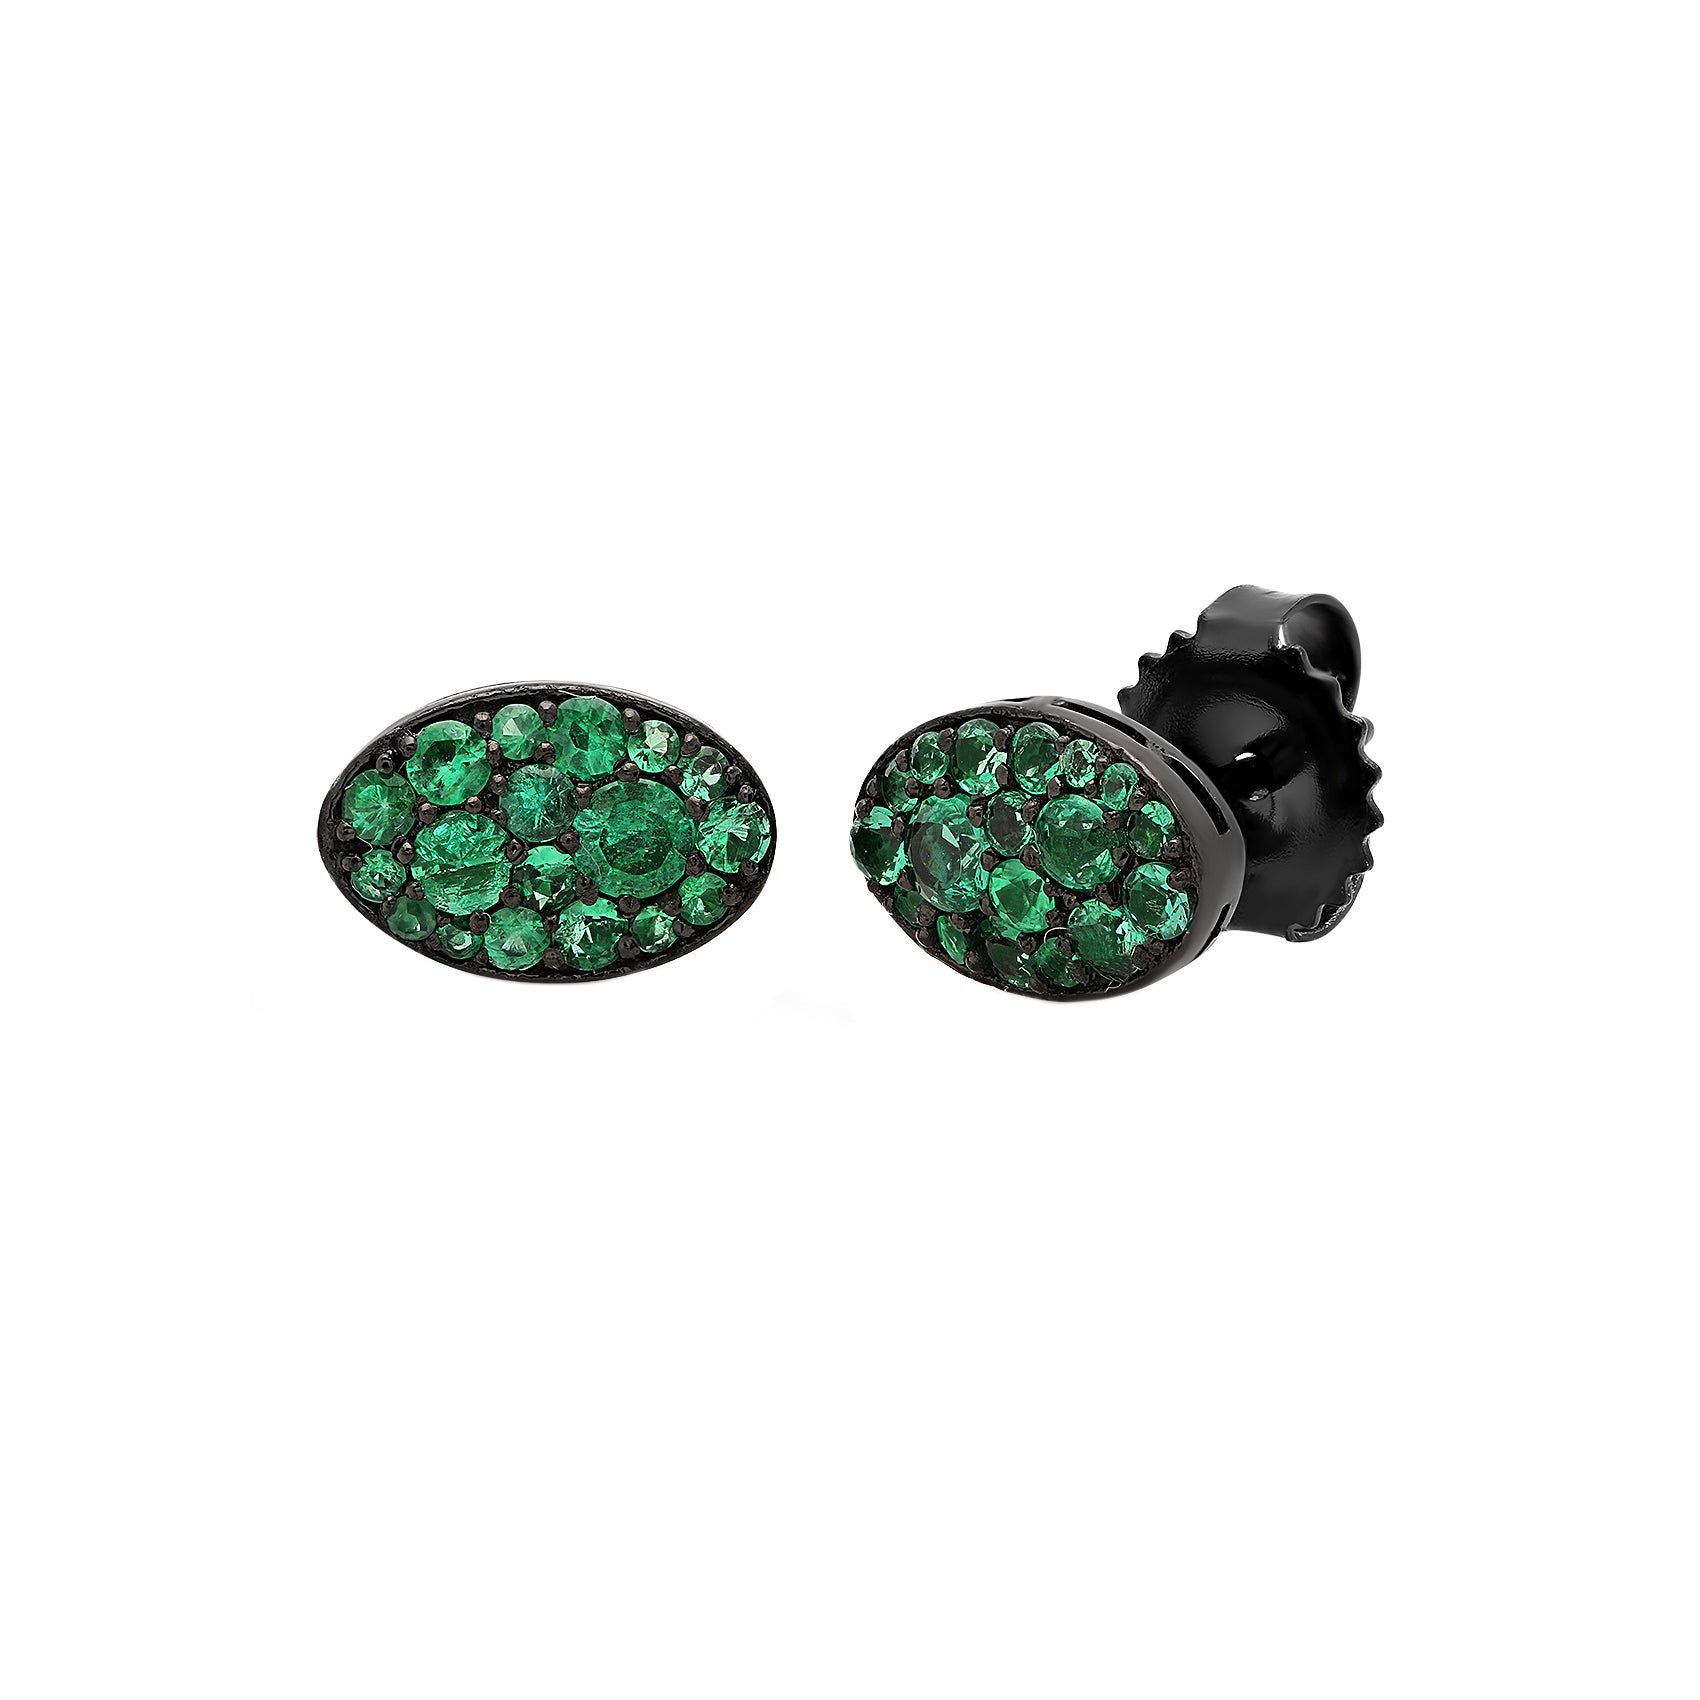 Emerald Baby Les Chevalie Earrings by Colette for Broken English Jewelry